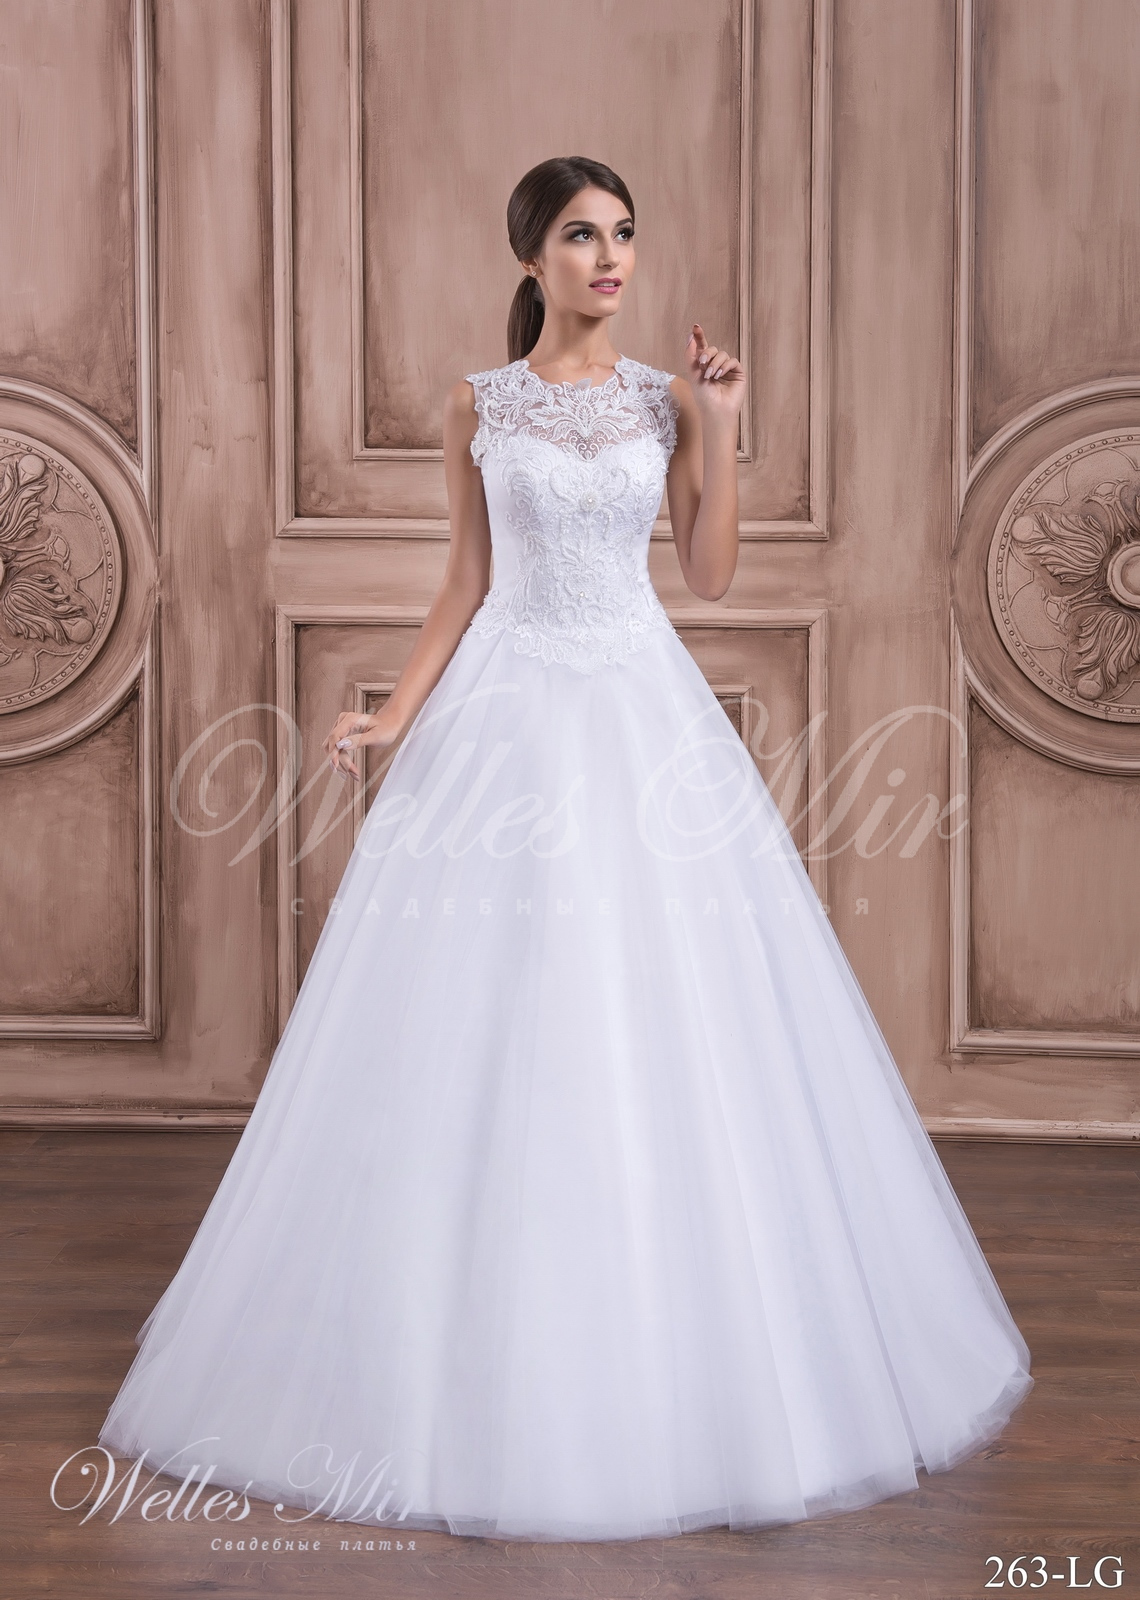 Wedding dresses 263-LG